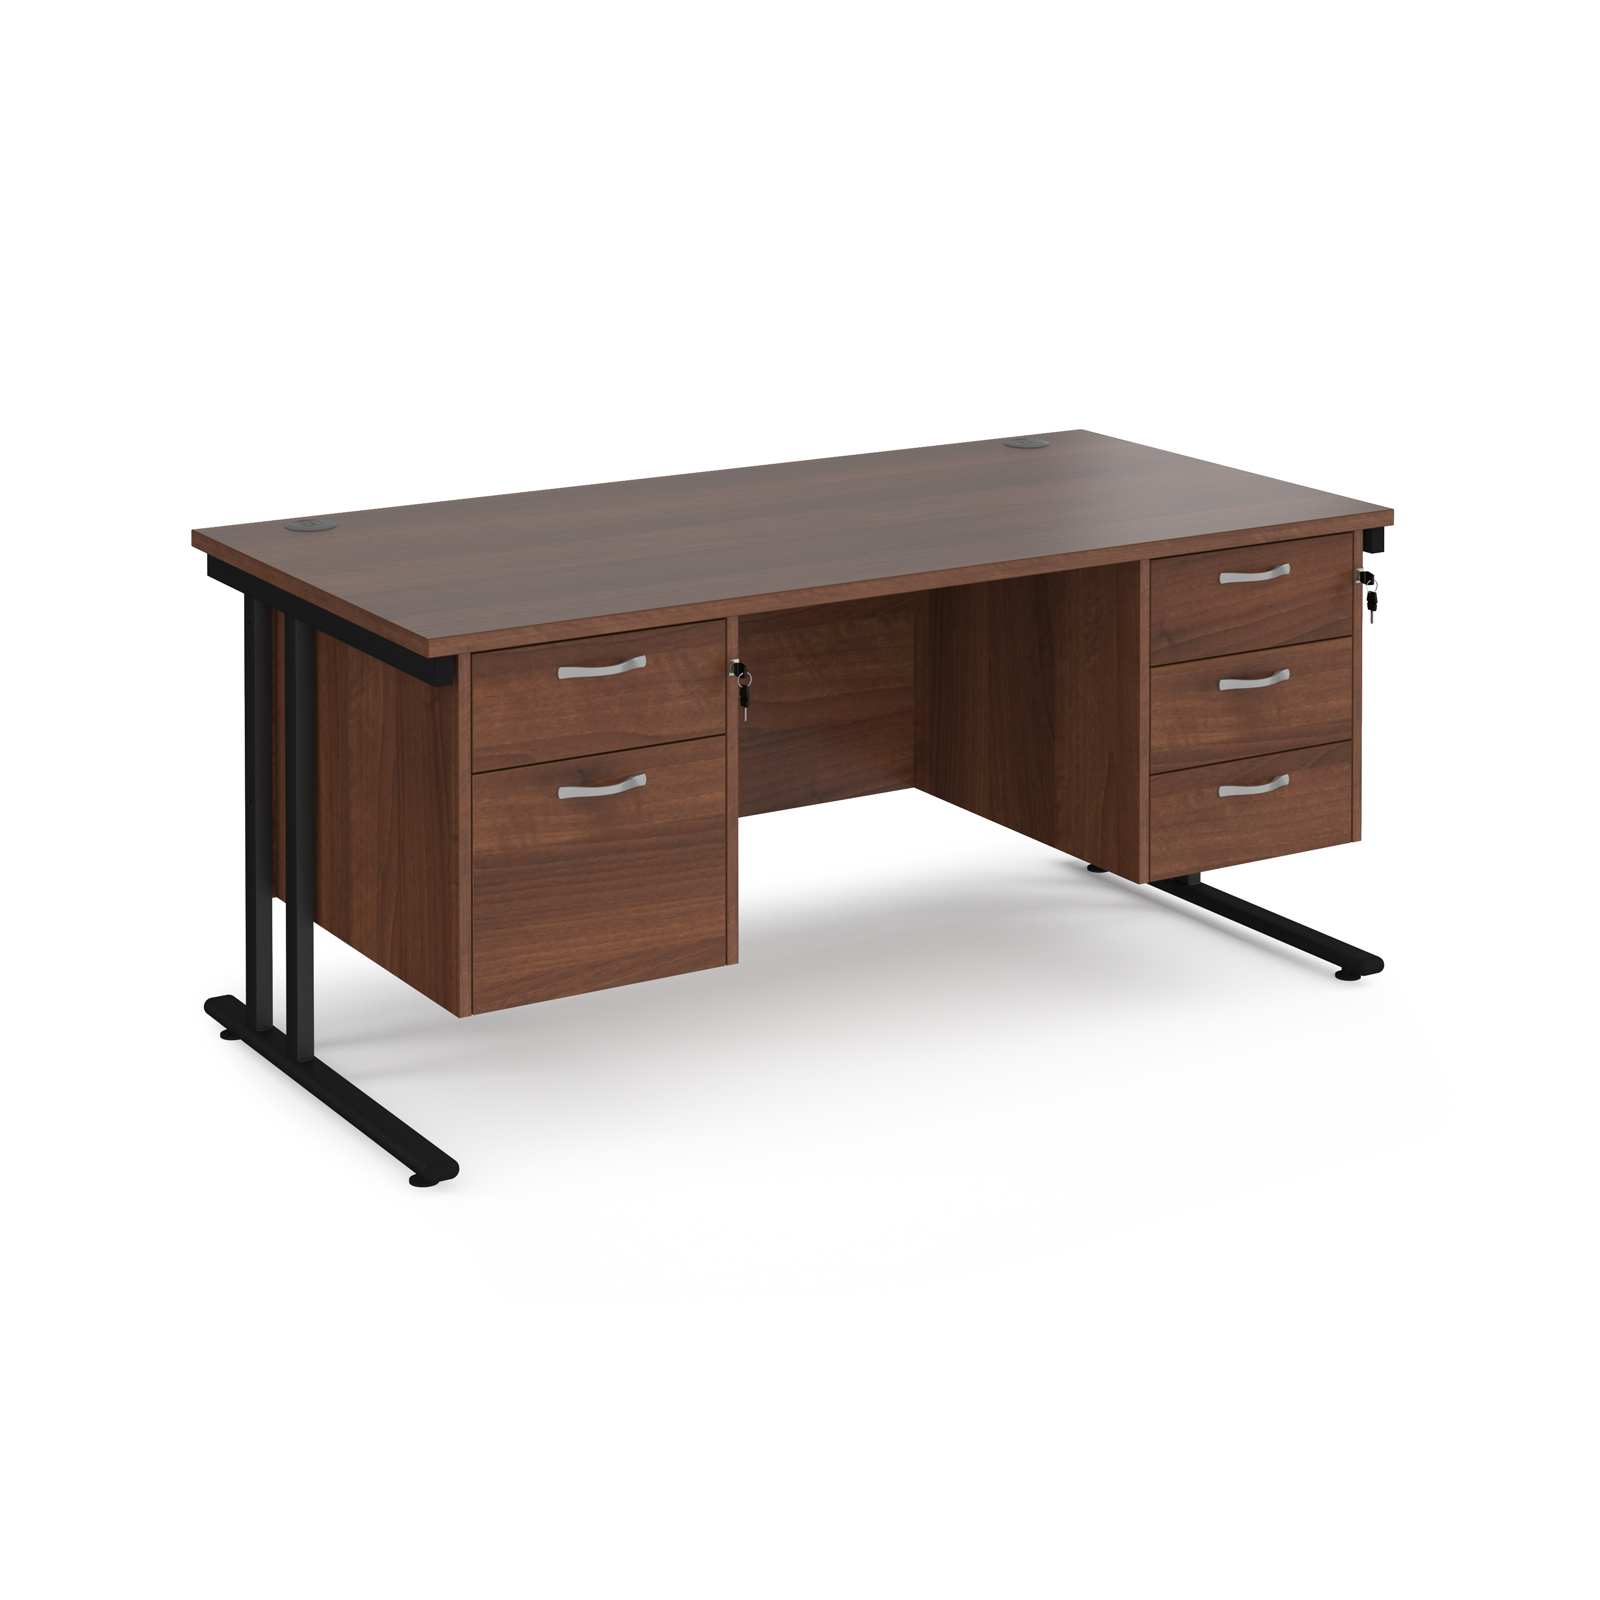 Maestro 25 straight desk 1600mm x 800mm with 2 and 3 drawer pedestals - black cantilever leg frame, walnut top